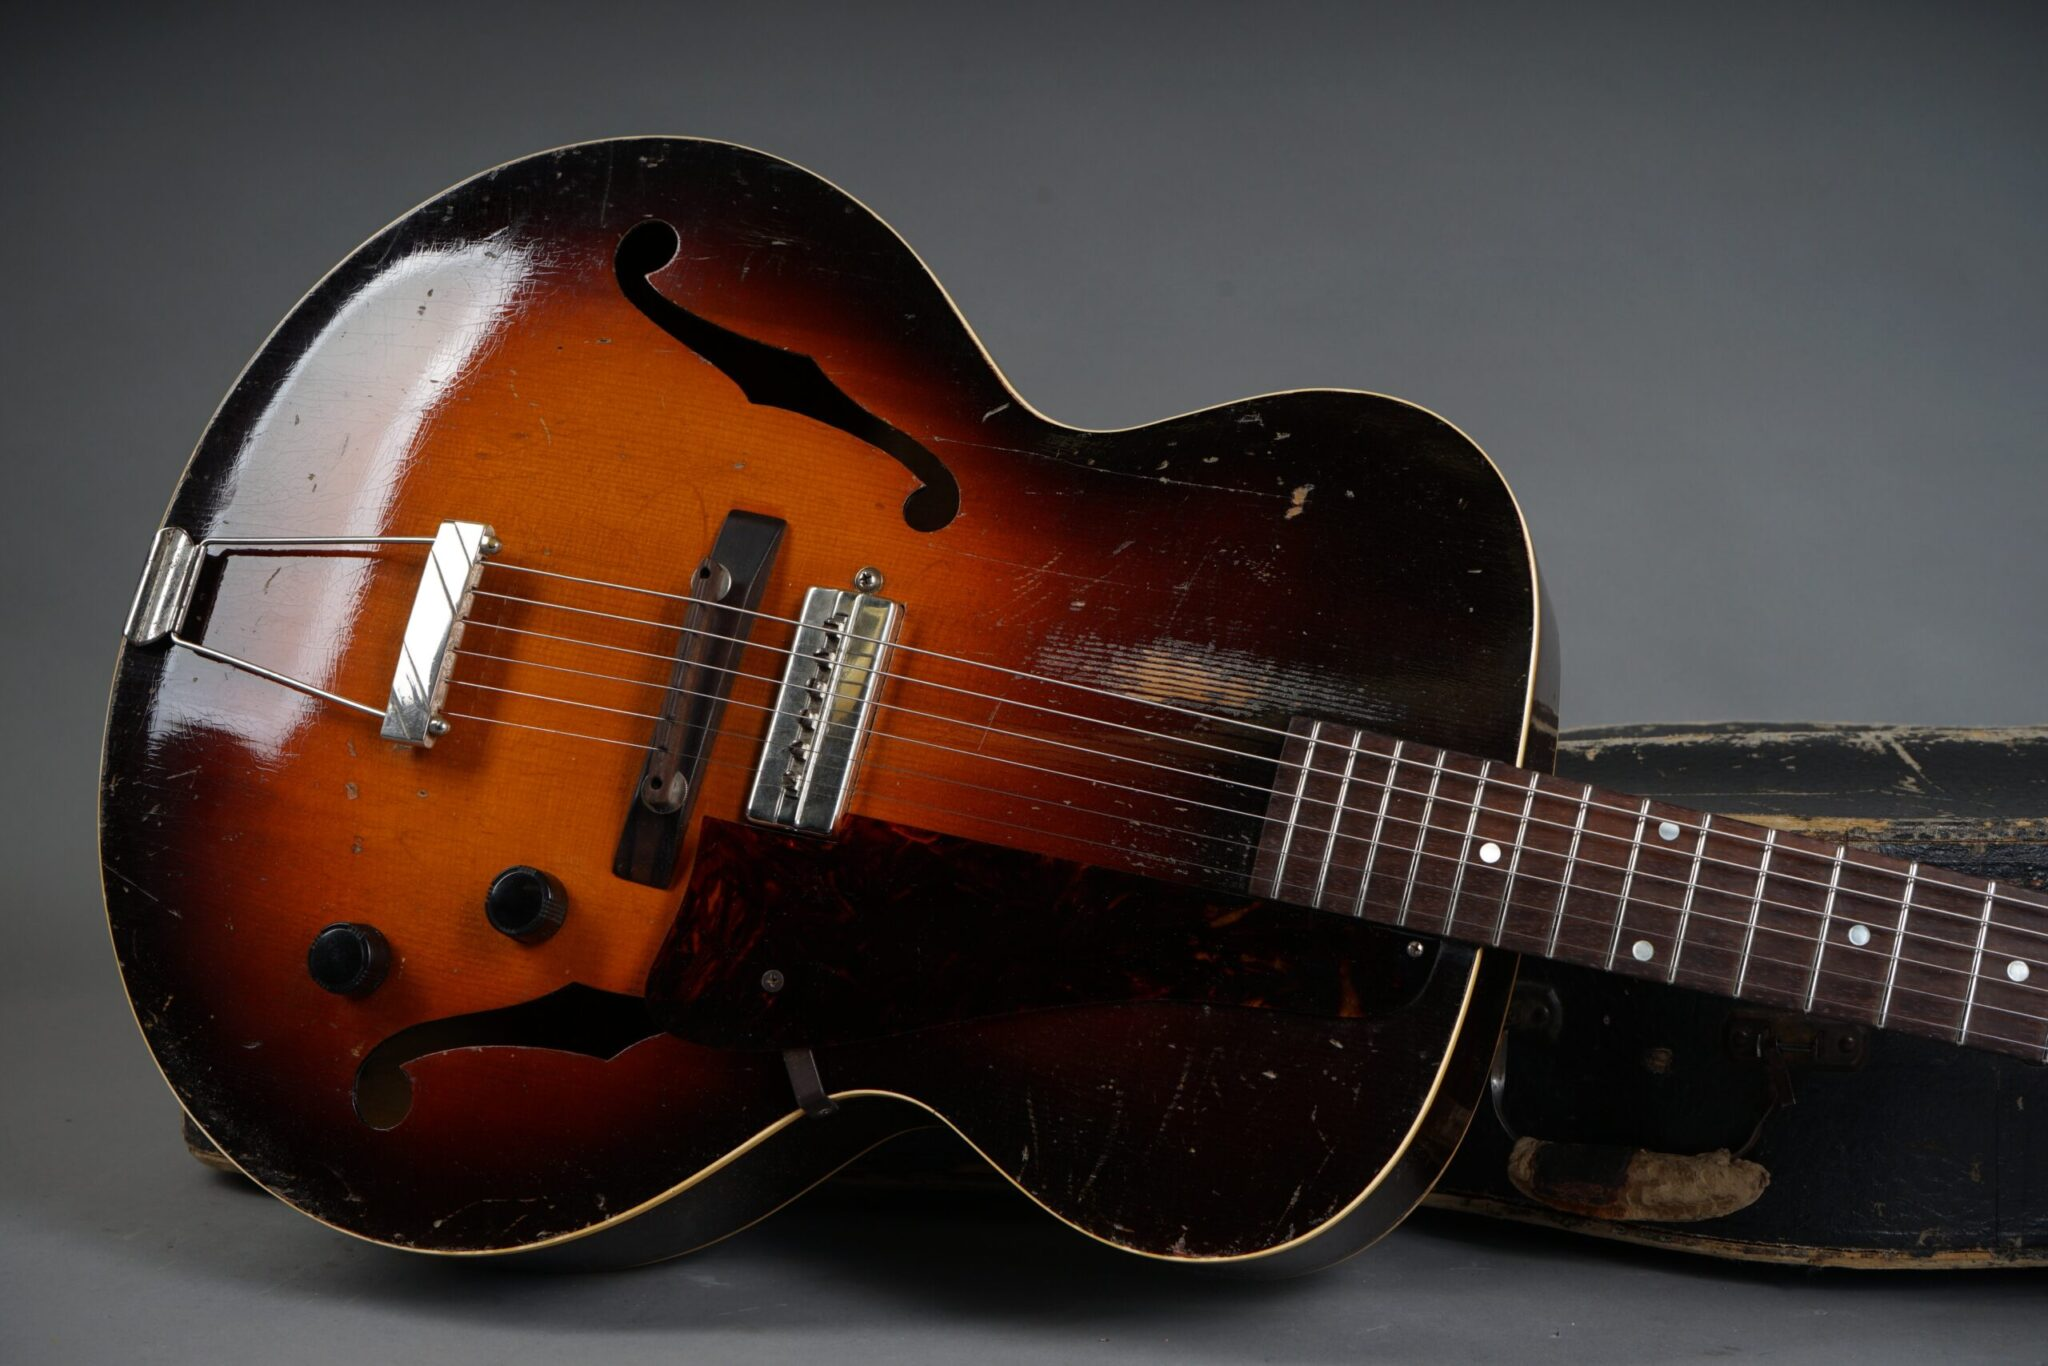 https://guitarpoint.de/app/uploads/products/1941-gibson-es-150/1941-Gibson-S-150-Sunburst-7380H-19-scaled-2048x1366.jpg